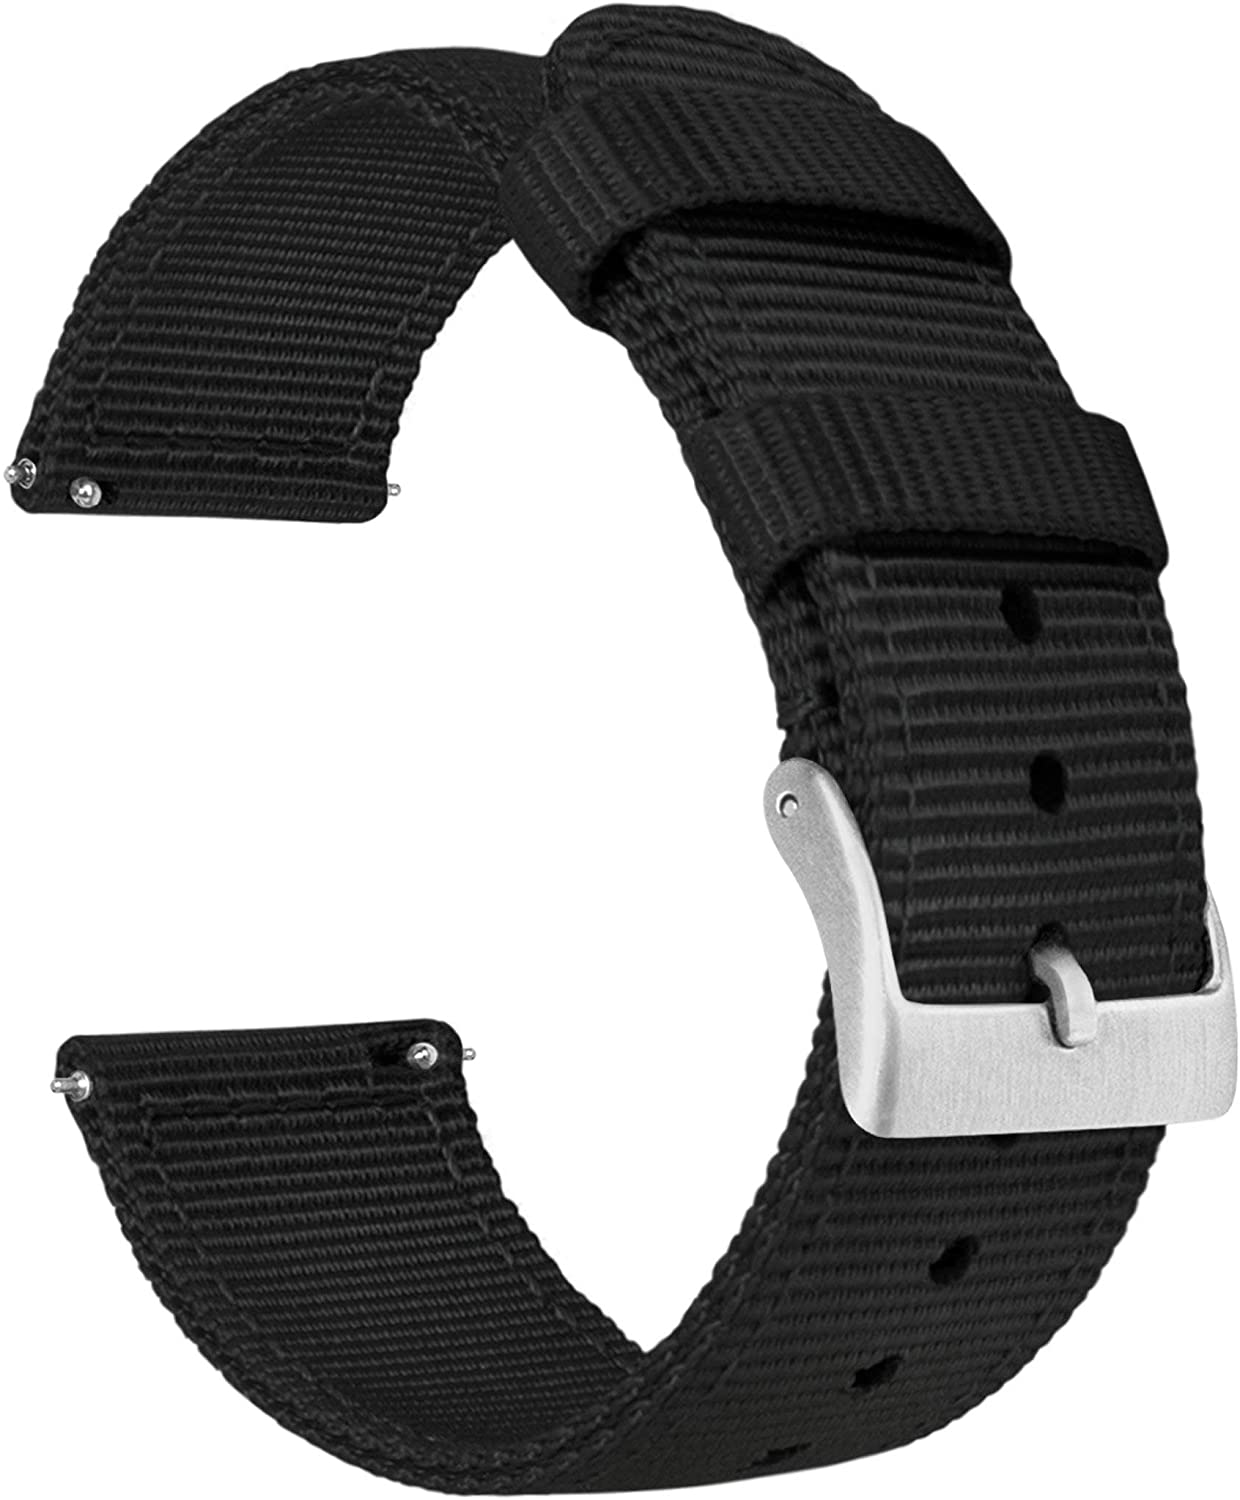 BARTON Watch Bands - Ballistic St Nylon Two-Piece Style Military Shipping included Super sale period limited